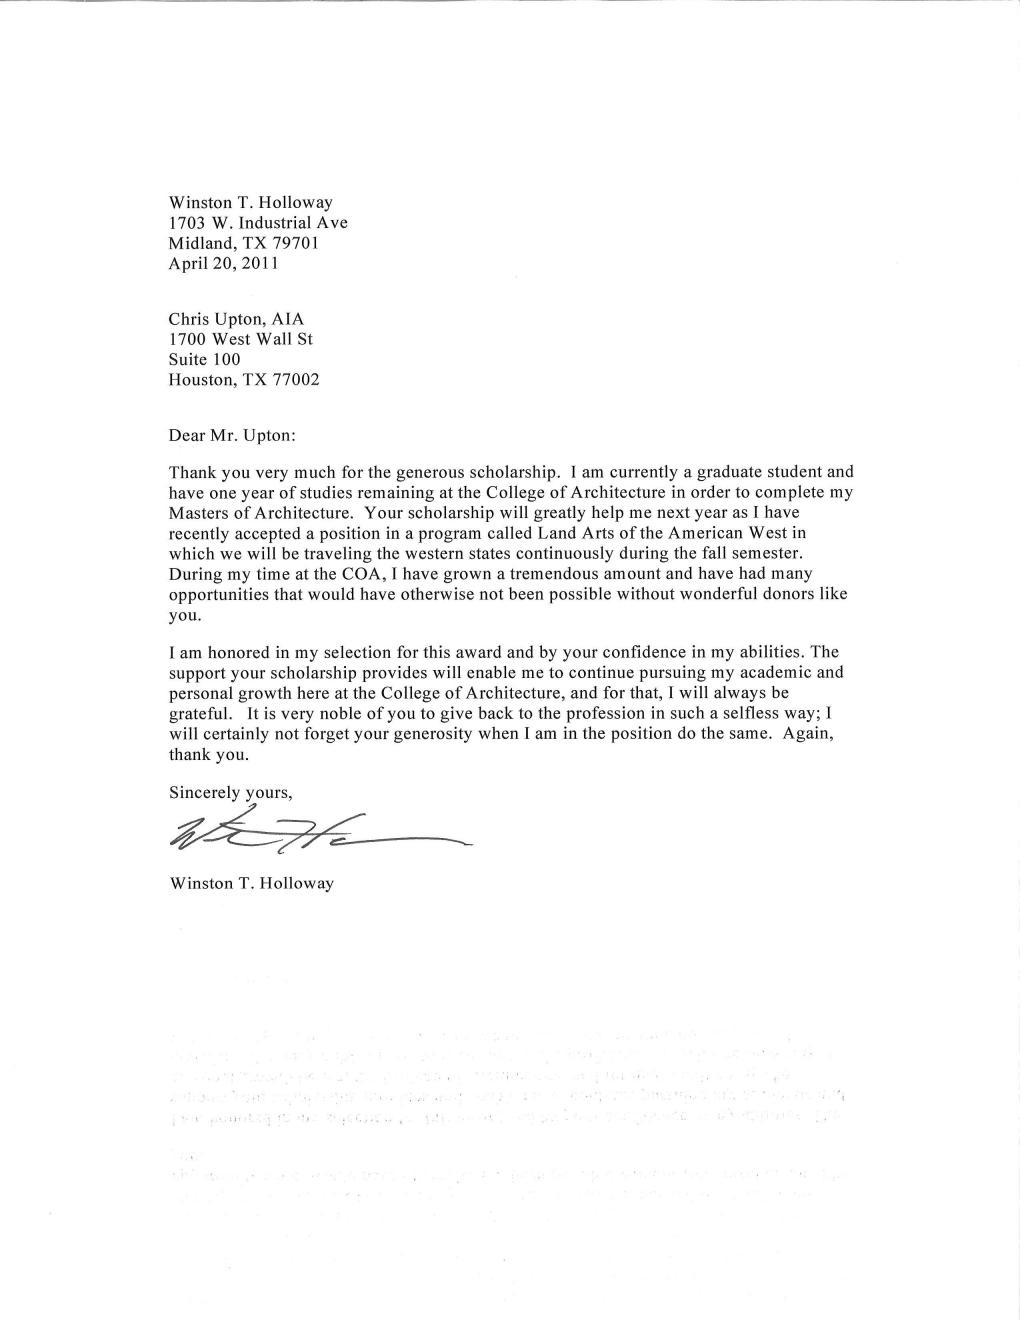 Below is his Thank You letter and the image from the Convocation at ...